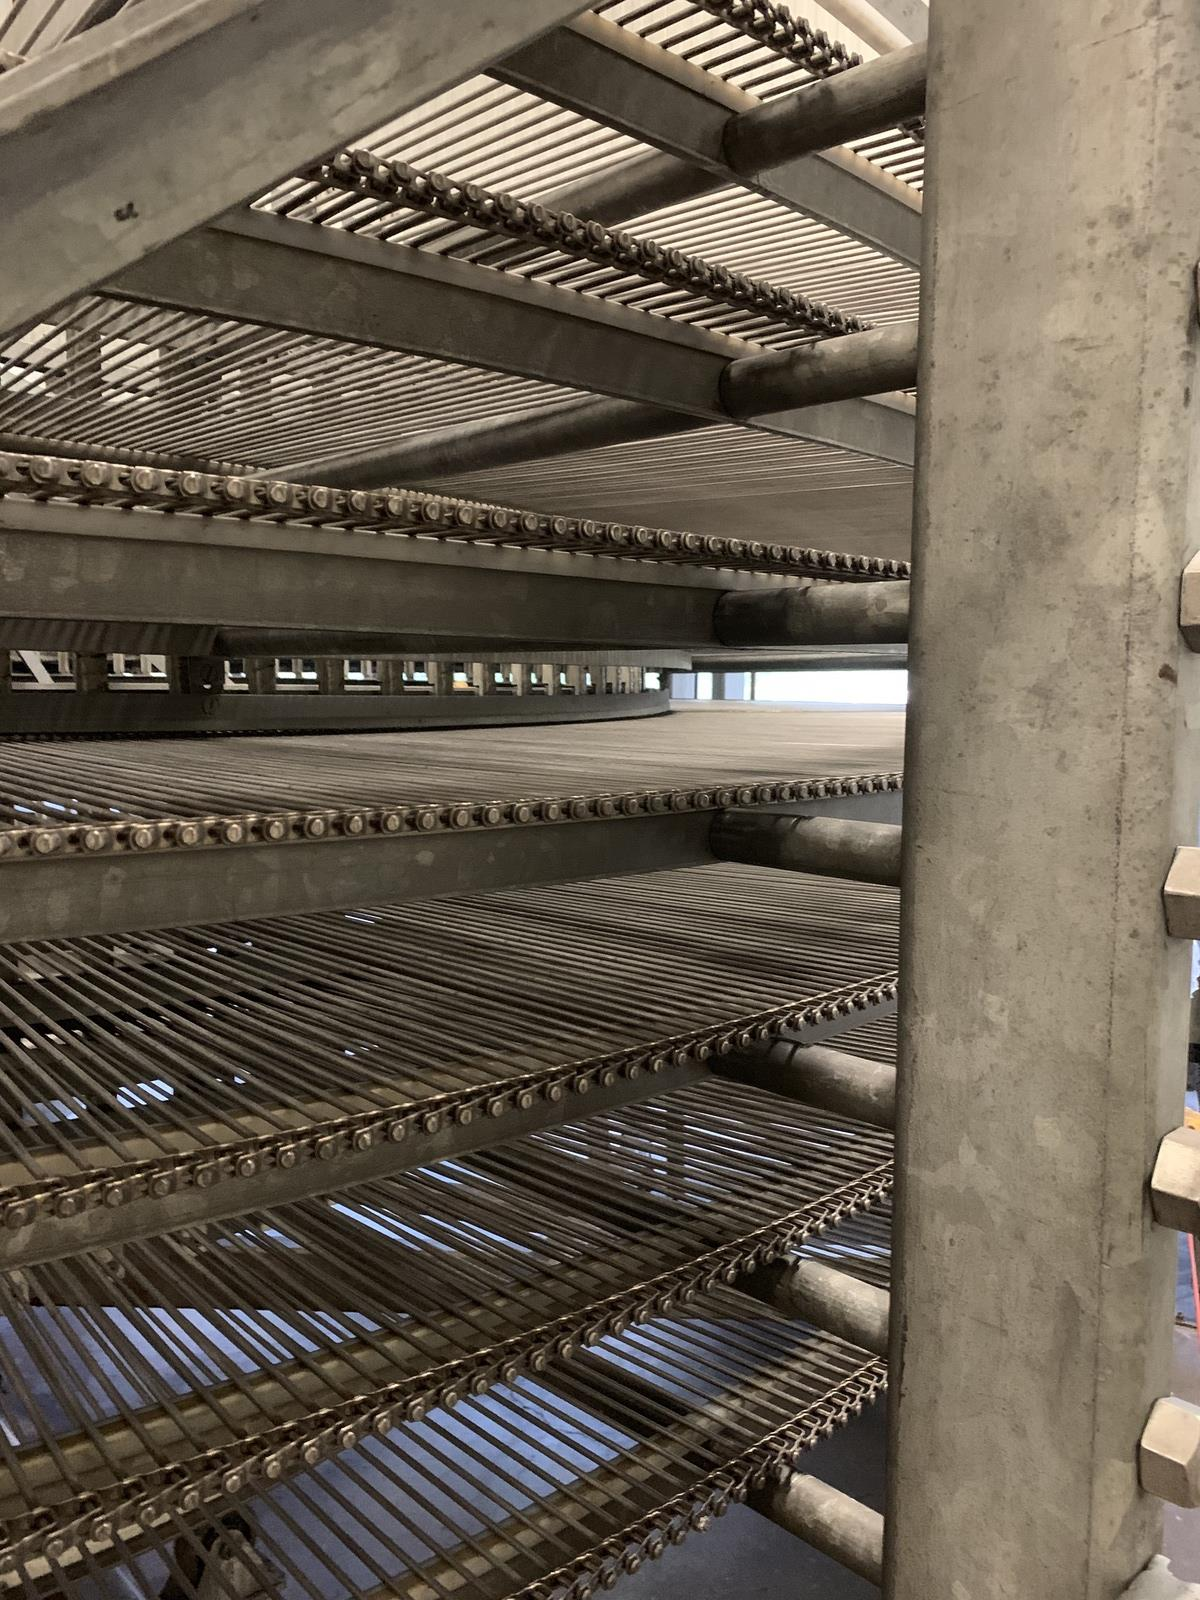 """Lot 26 - Ambient Spiral Cooler, 34"""" Belt Width, 3-5/8in Tier Clearance, 7-Tier, 18' OD, 9' O 